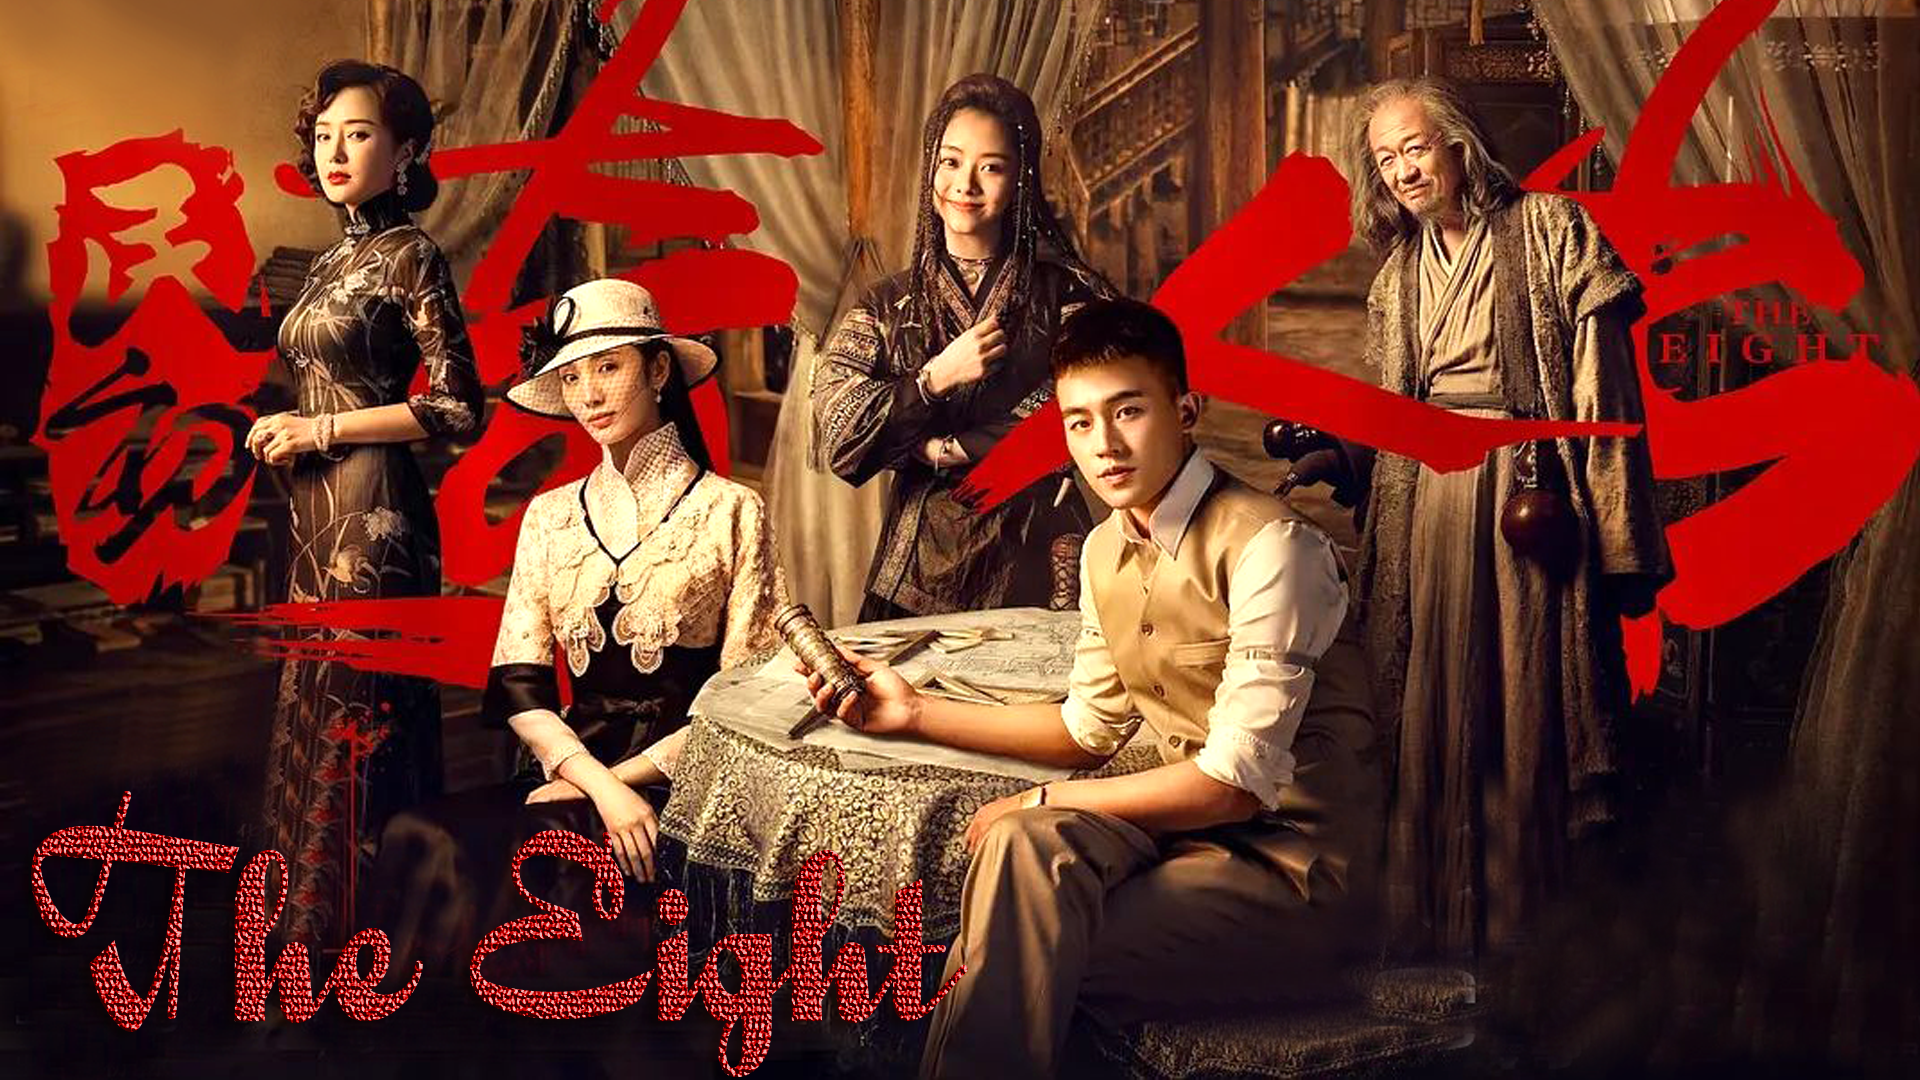 The Eight - Season 1